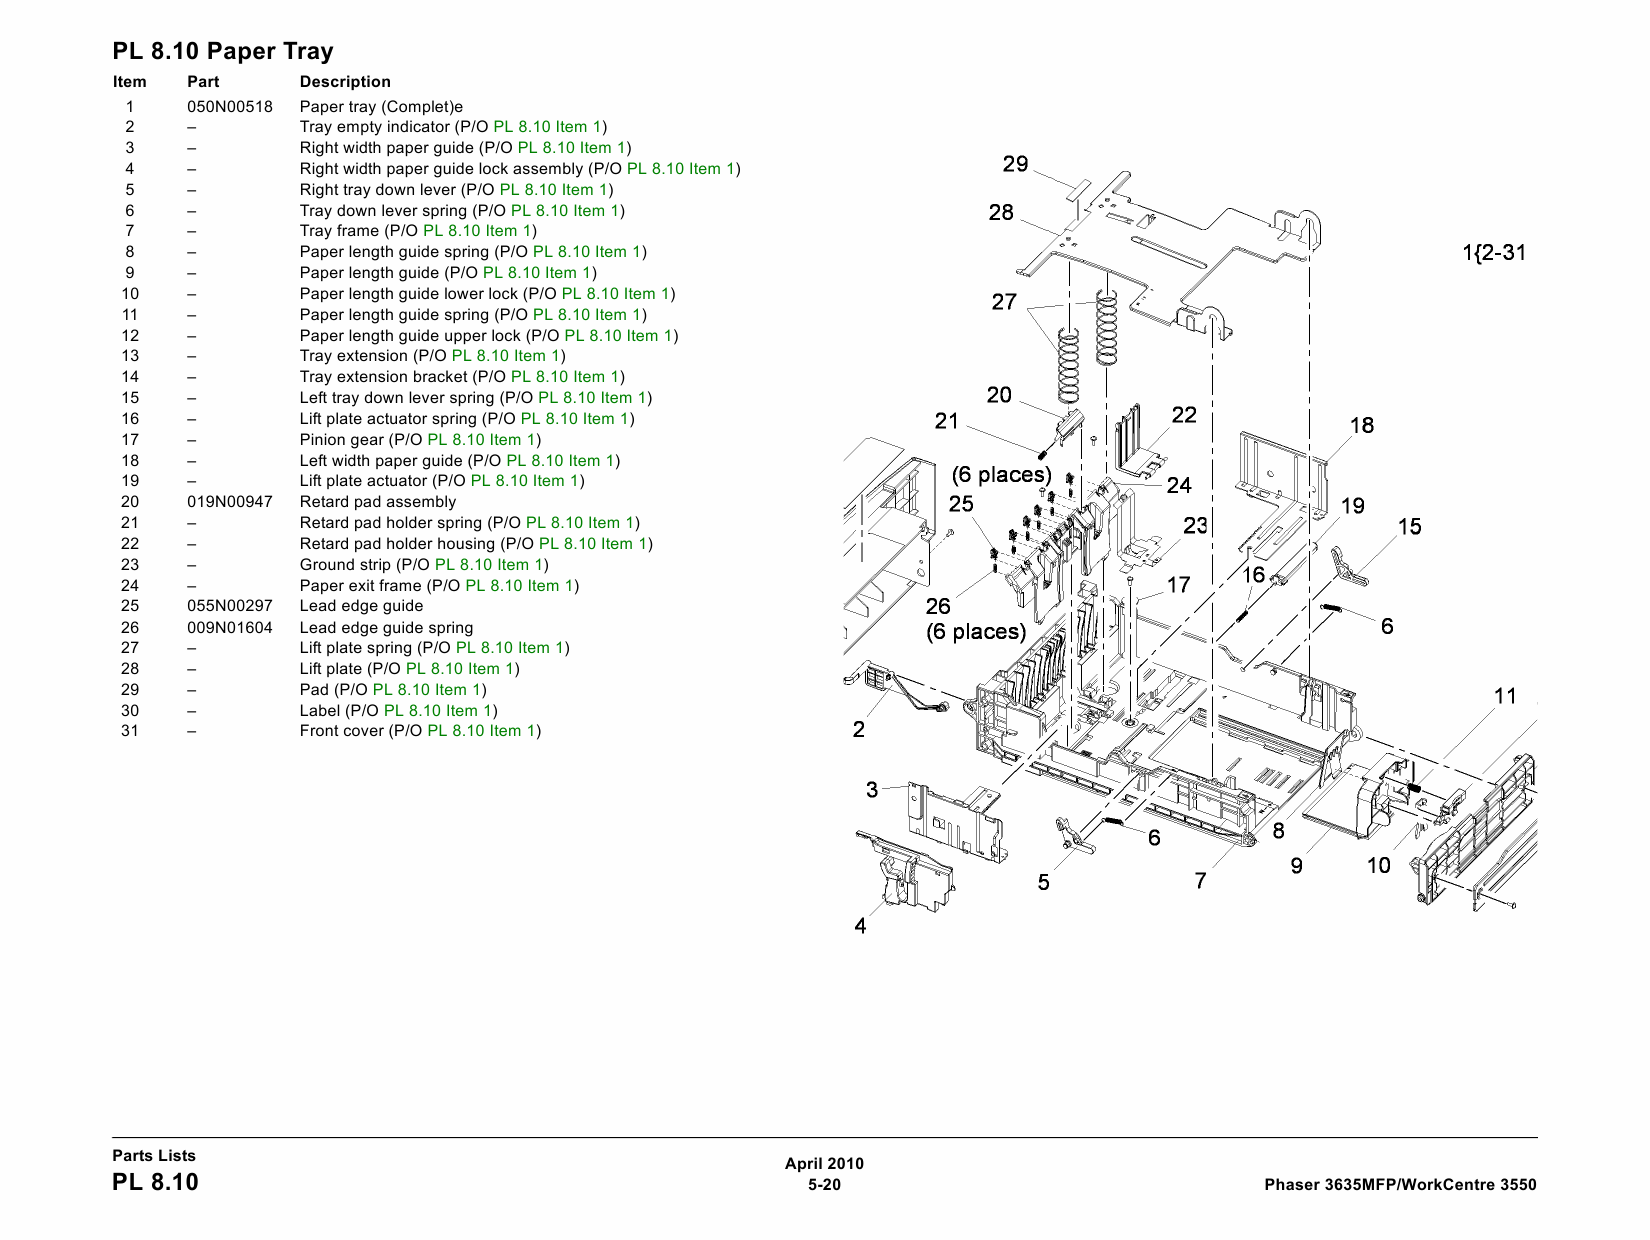 Xerox Phaser 3635-MFP WorkCentre-3550 Parts List Manual